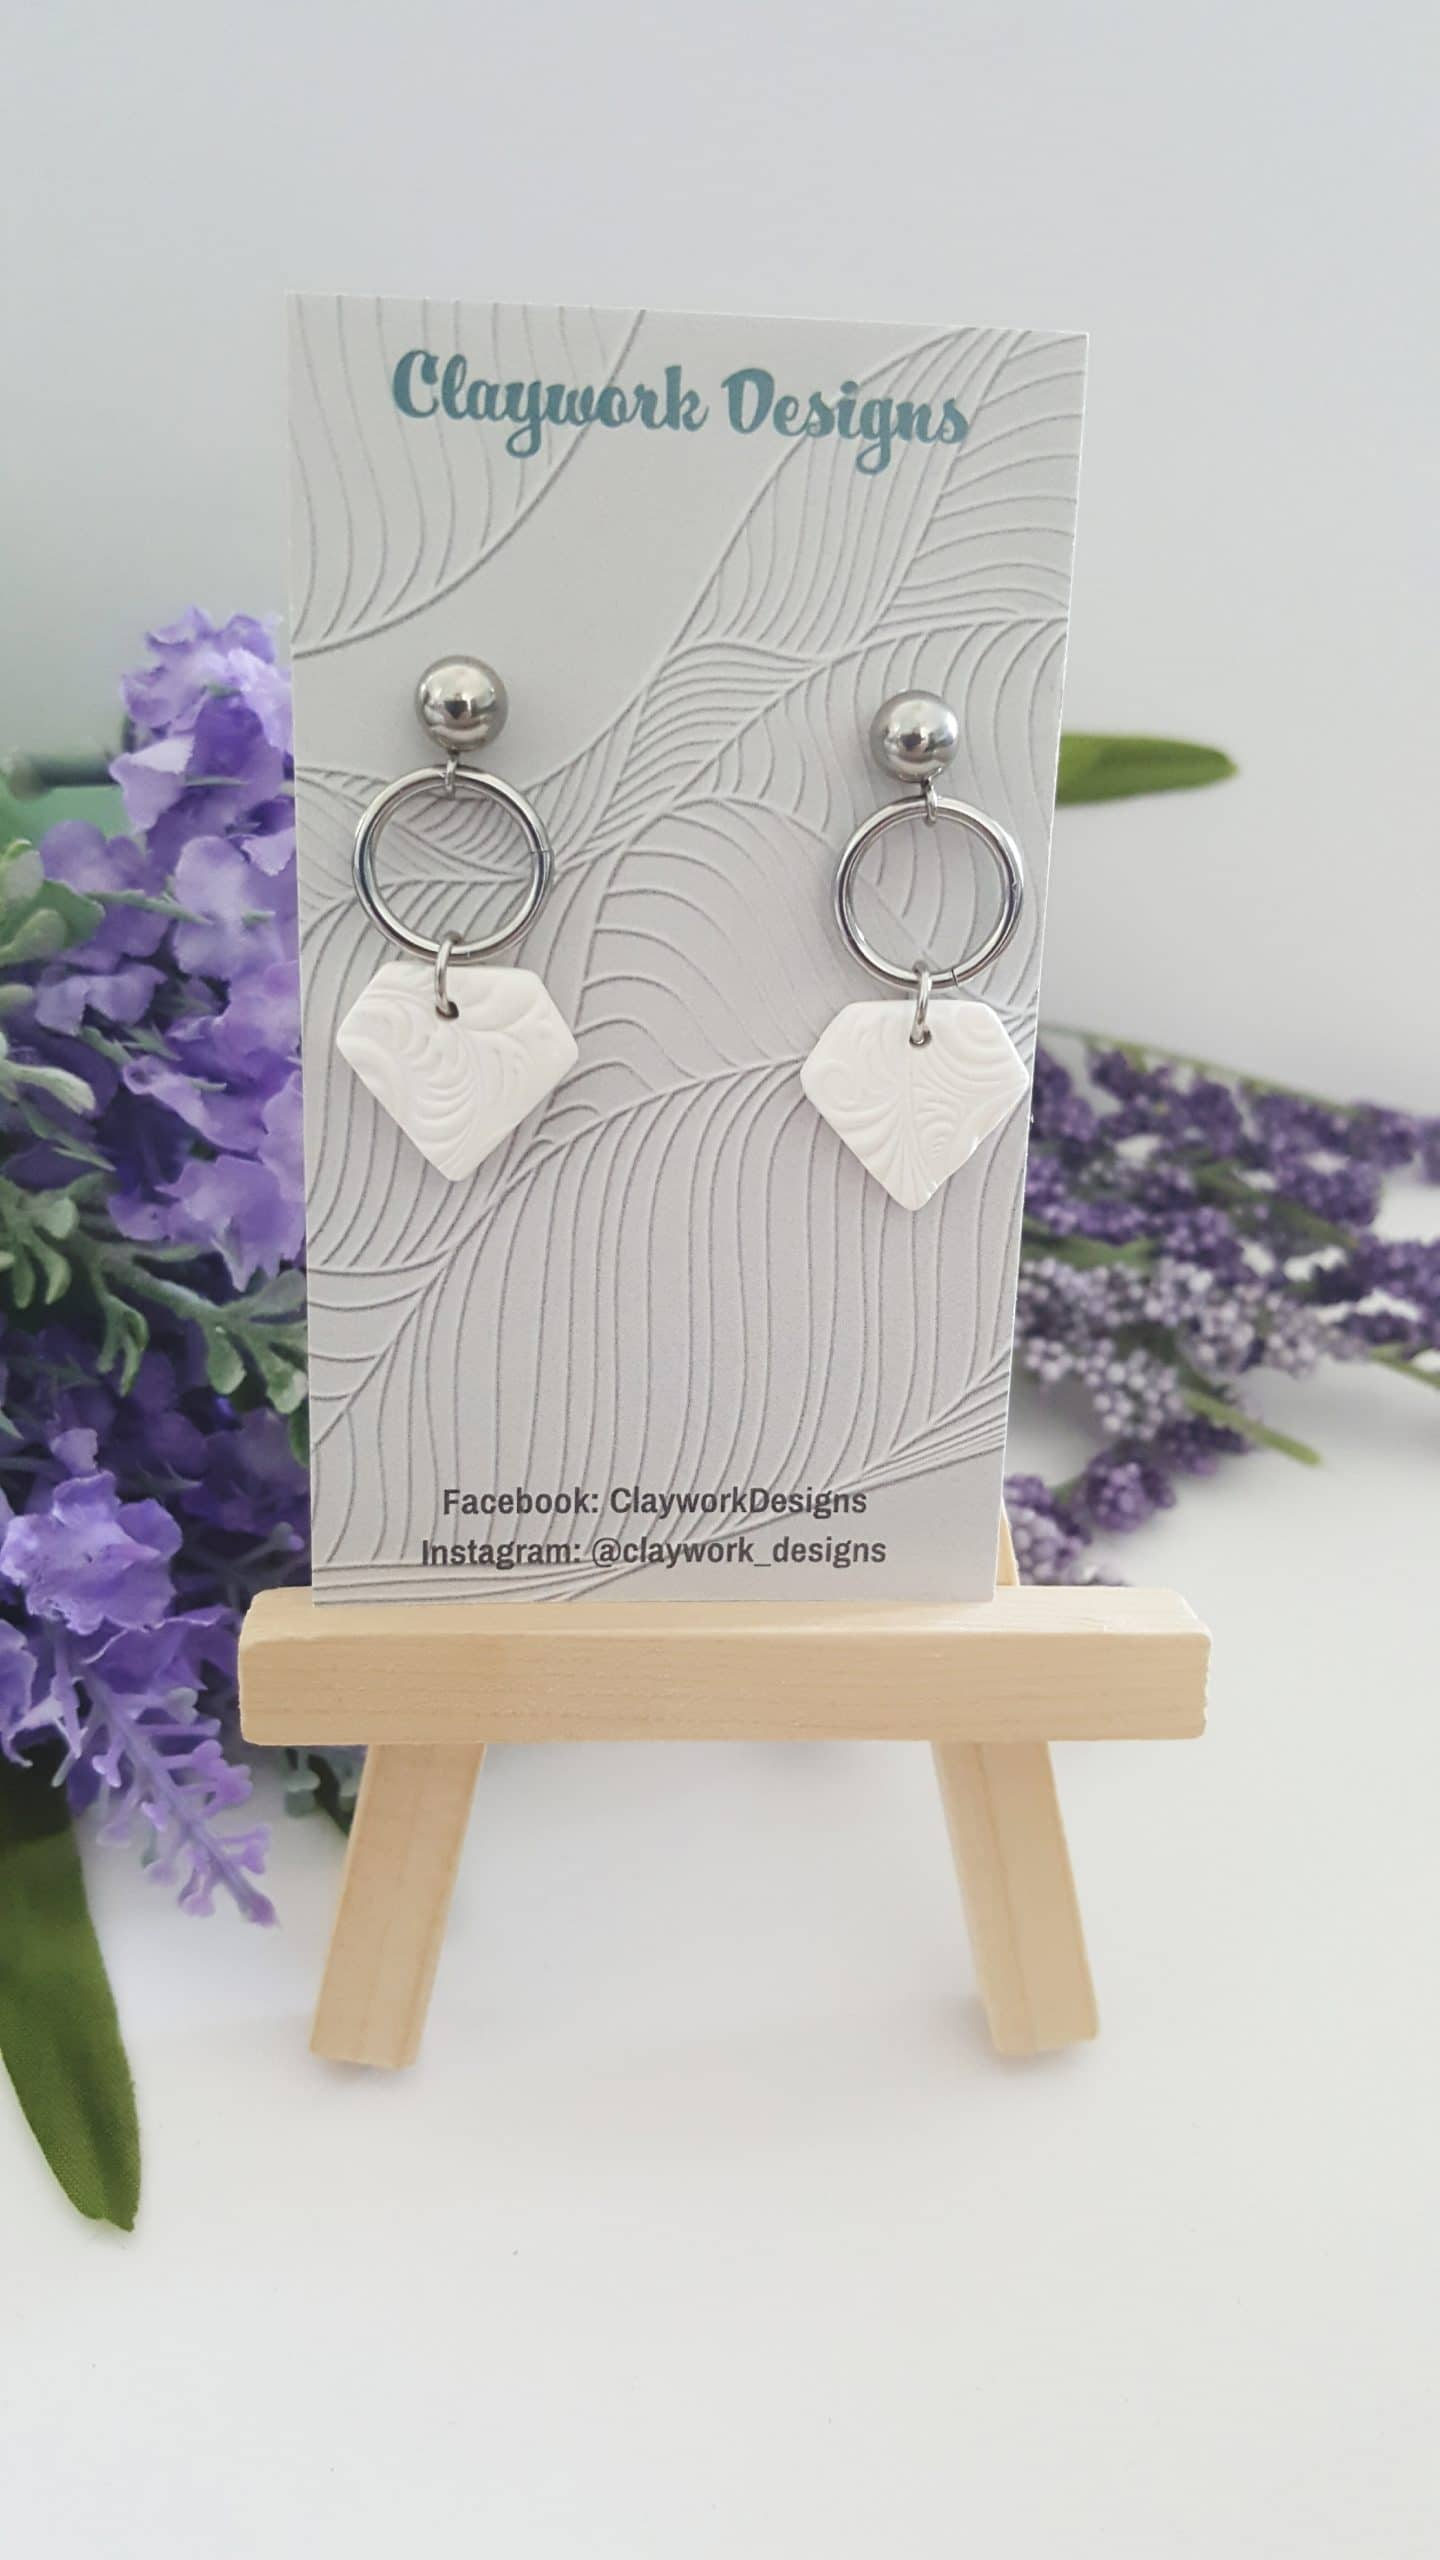 Wirework Designs   Handcrafted chainmaille jewellery and chainmaille products   Clay Dangle Stud Earrings - Single pair   20210515_152524